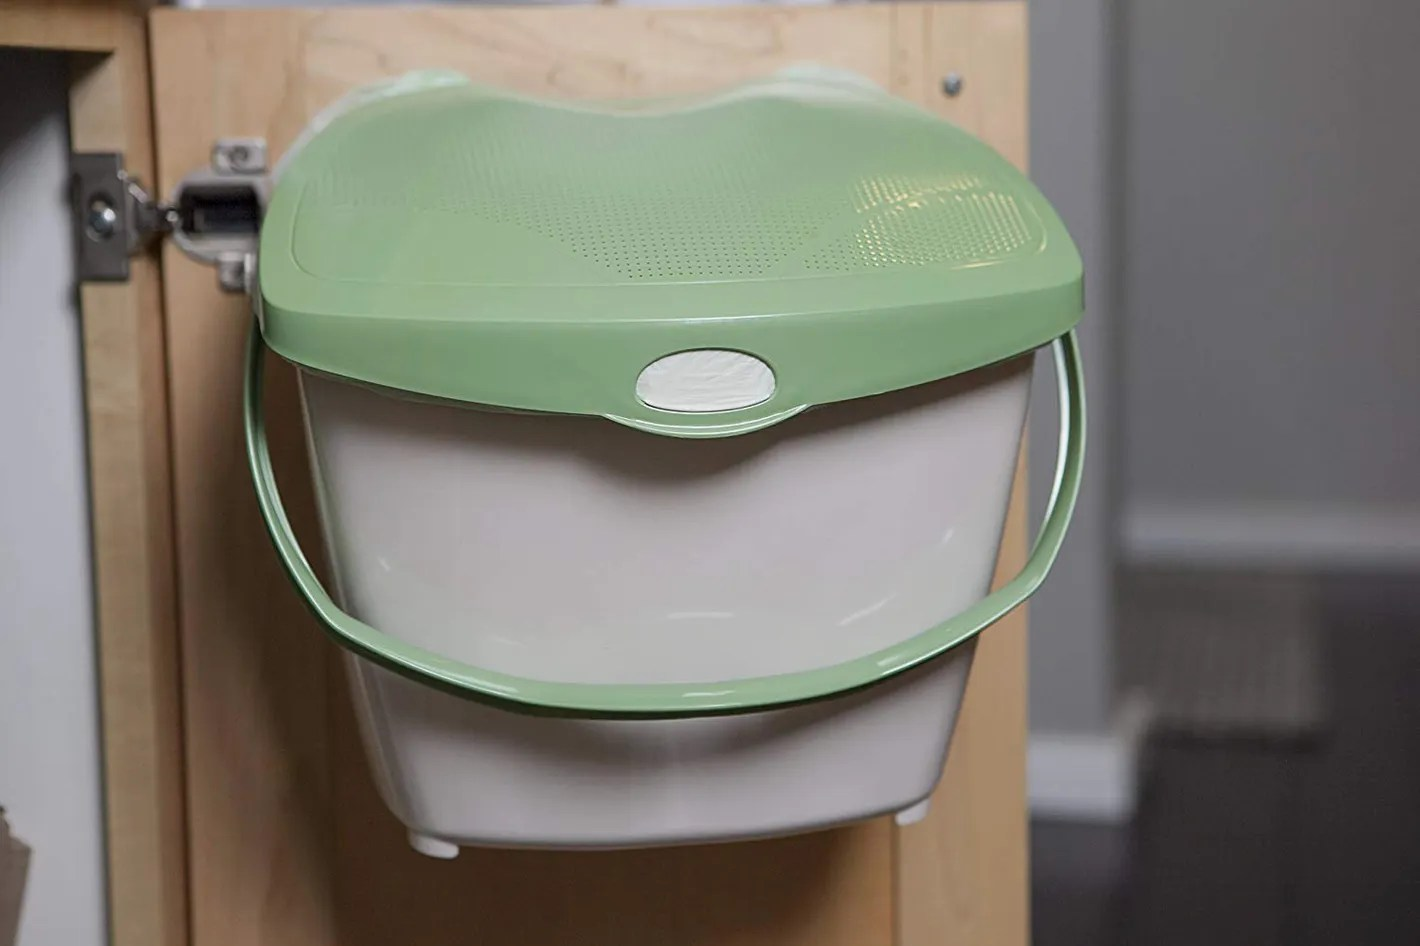 compost bin for kitchen table sale 13 stylish bins your small 2018 mountable by zero waste together